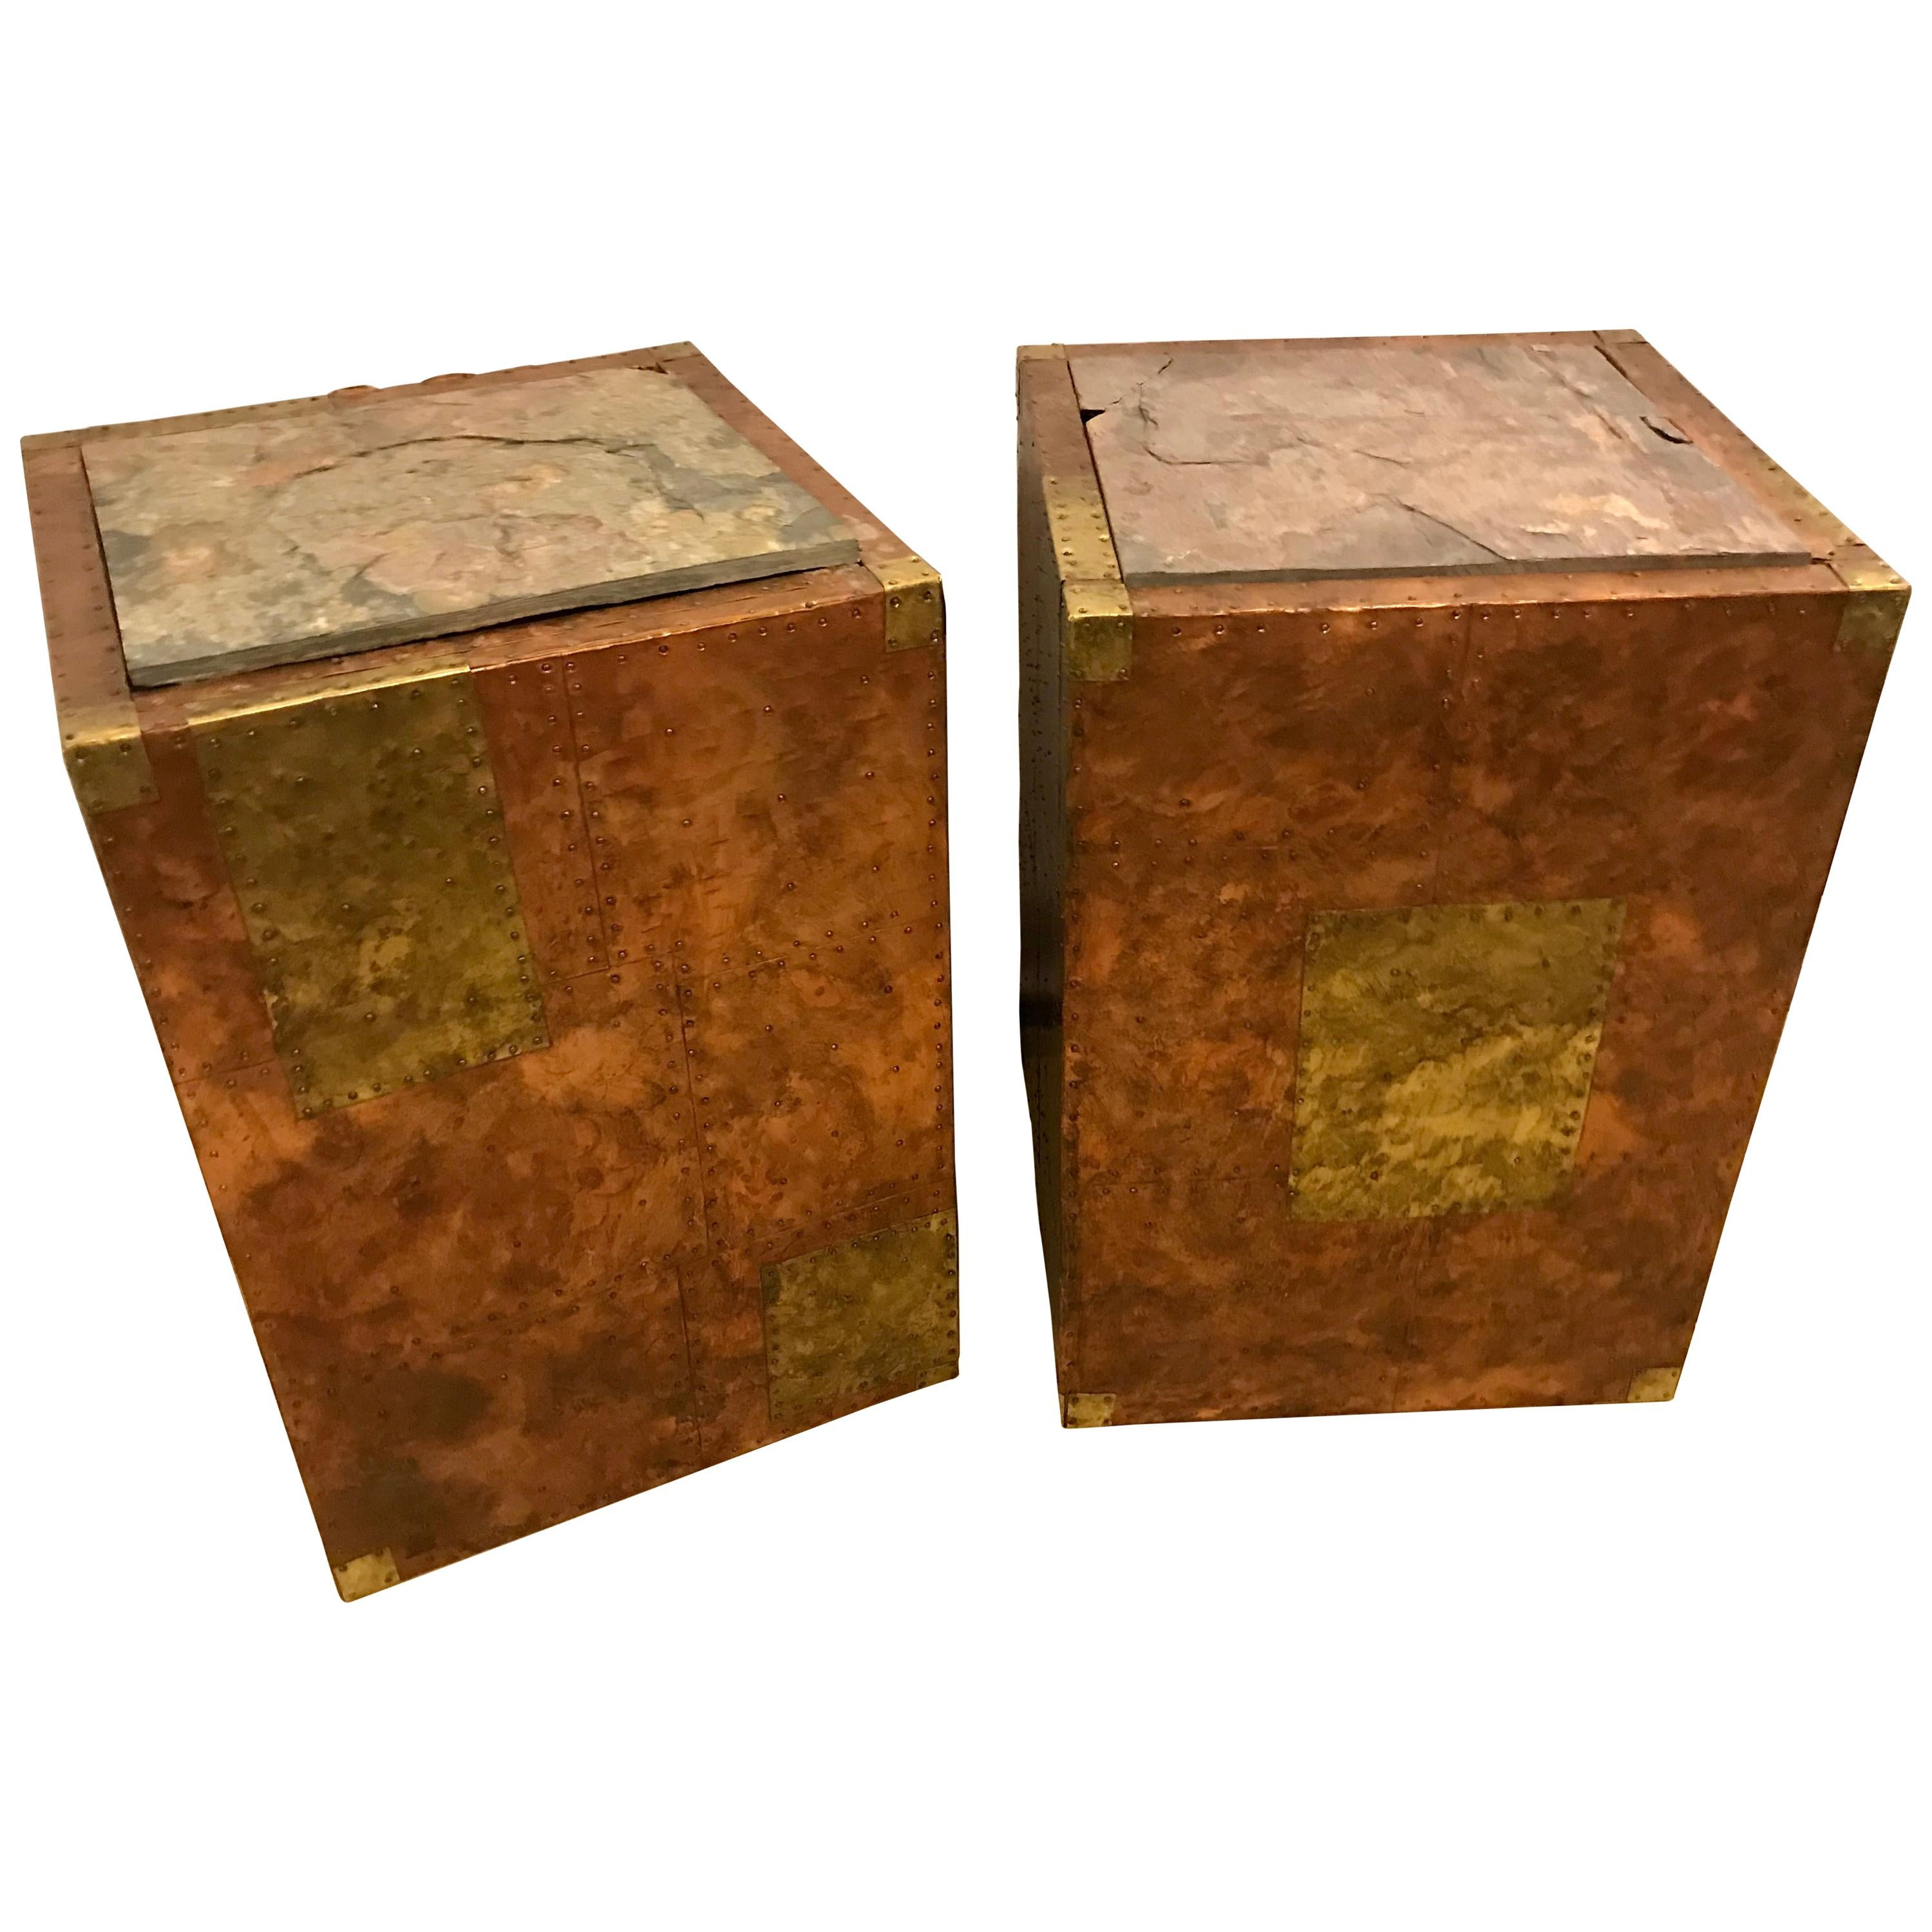 Pair of Mid-Century Modern Paul Evans Inspired End Tables or Pedestals